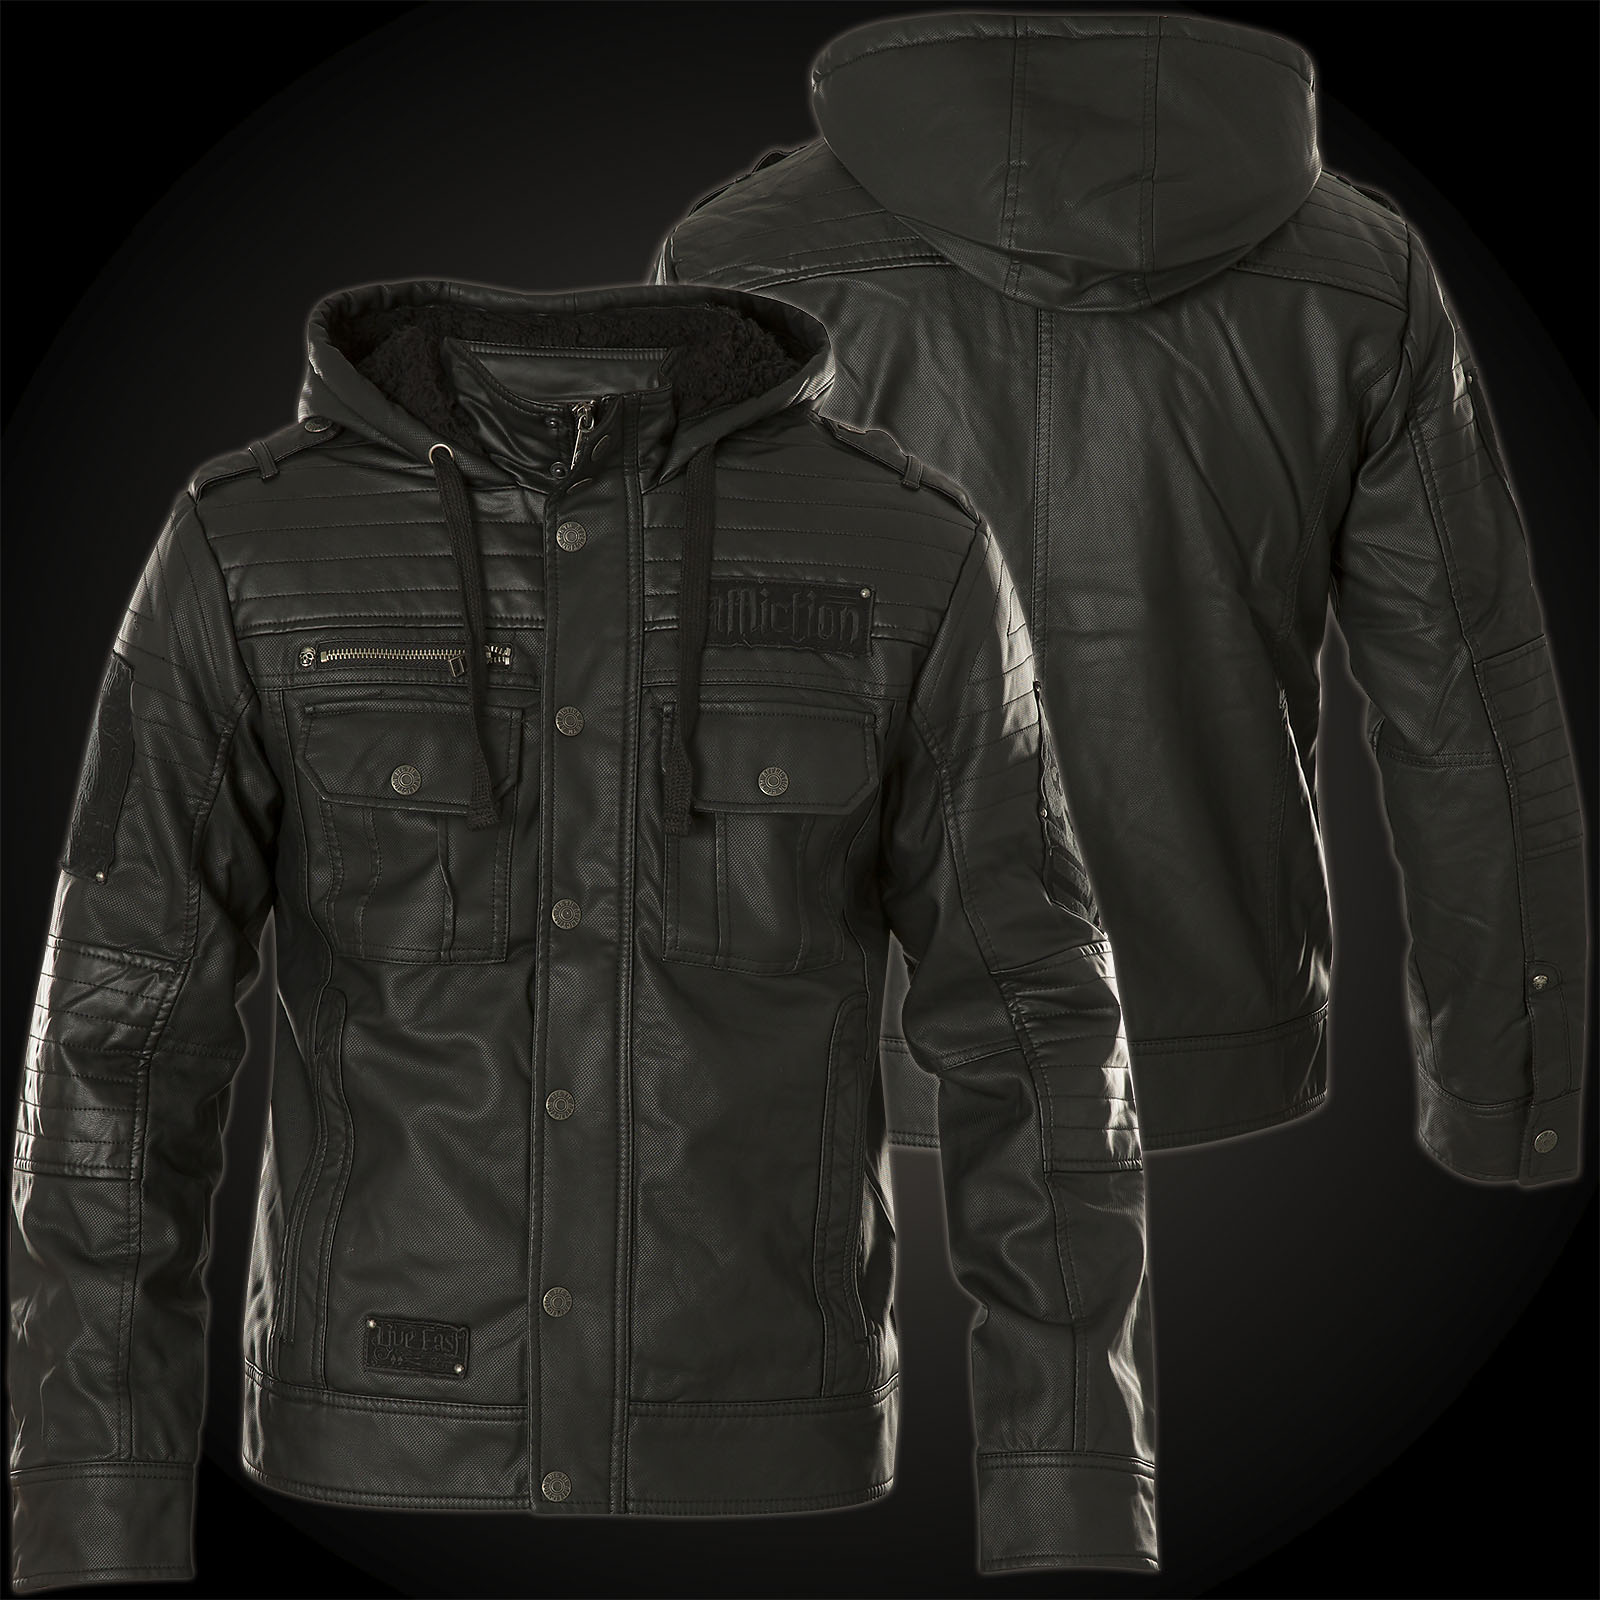 Affliction Jacket Reflection with logo patches